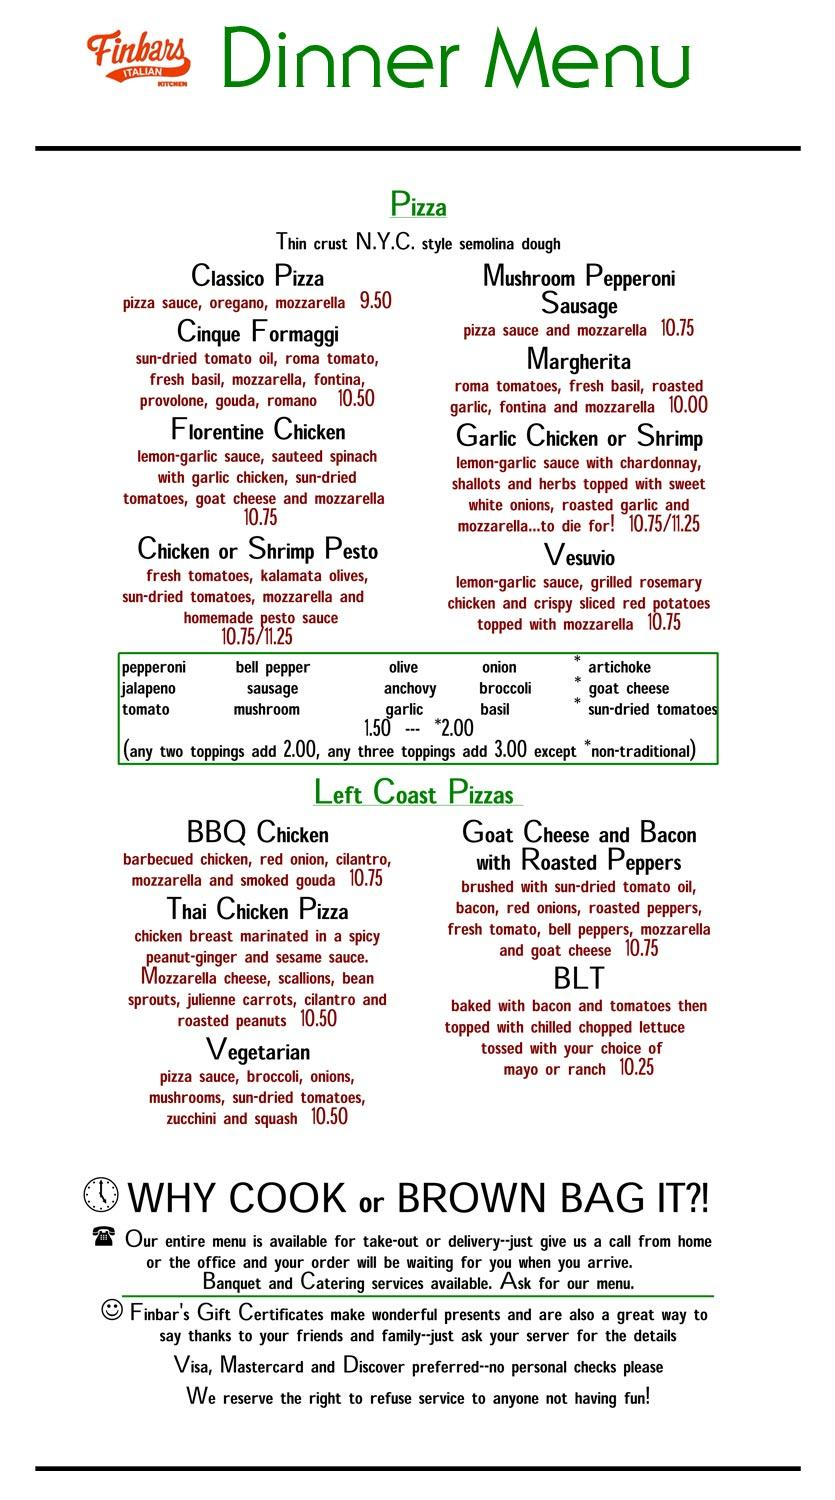 Finbars-Italian-Kitchen-Seal-Beach-restaurant-menus-874404-finbar_menu-dinner5